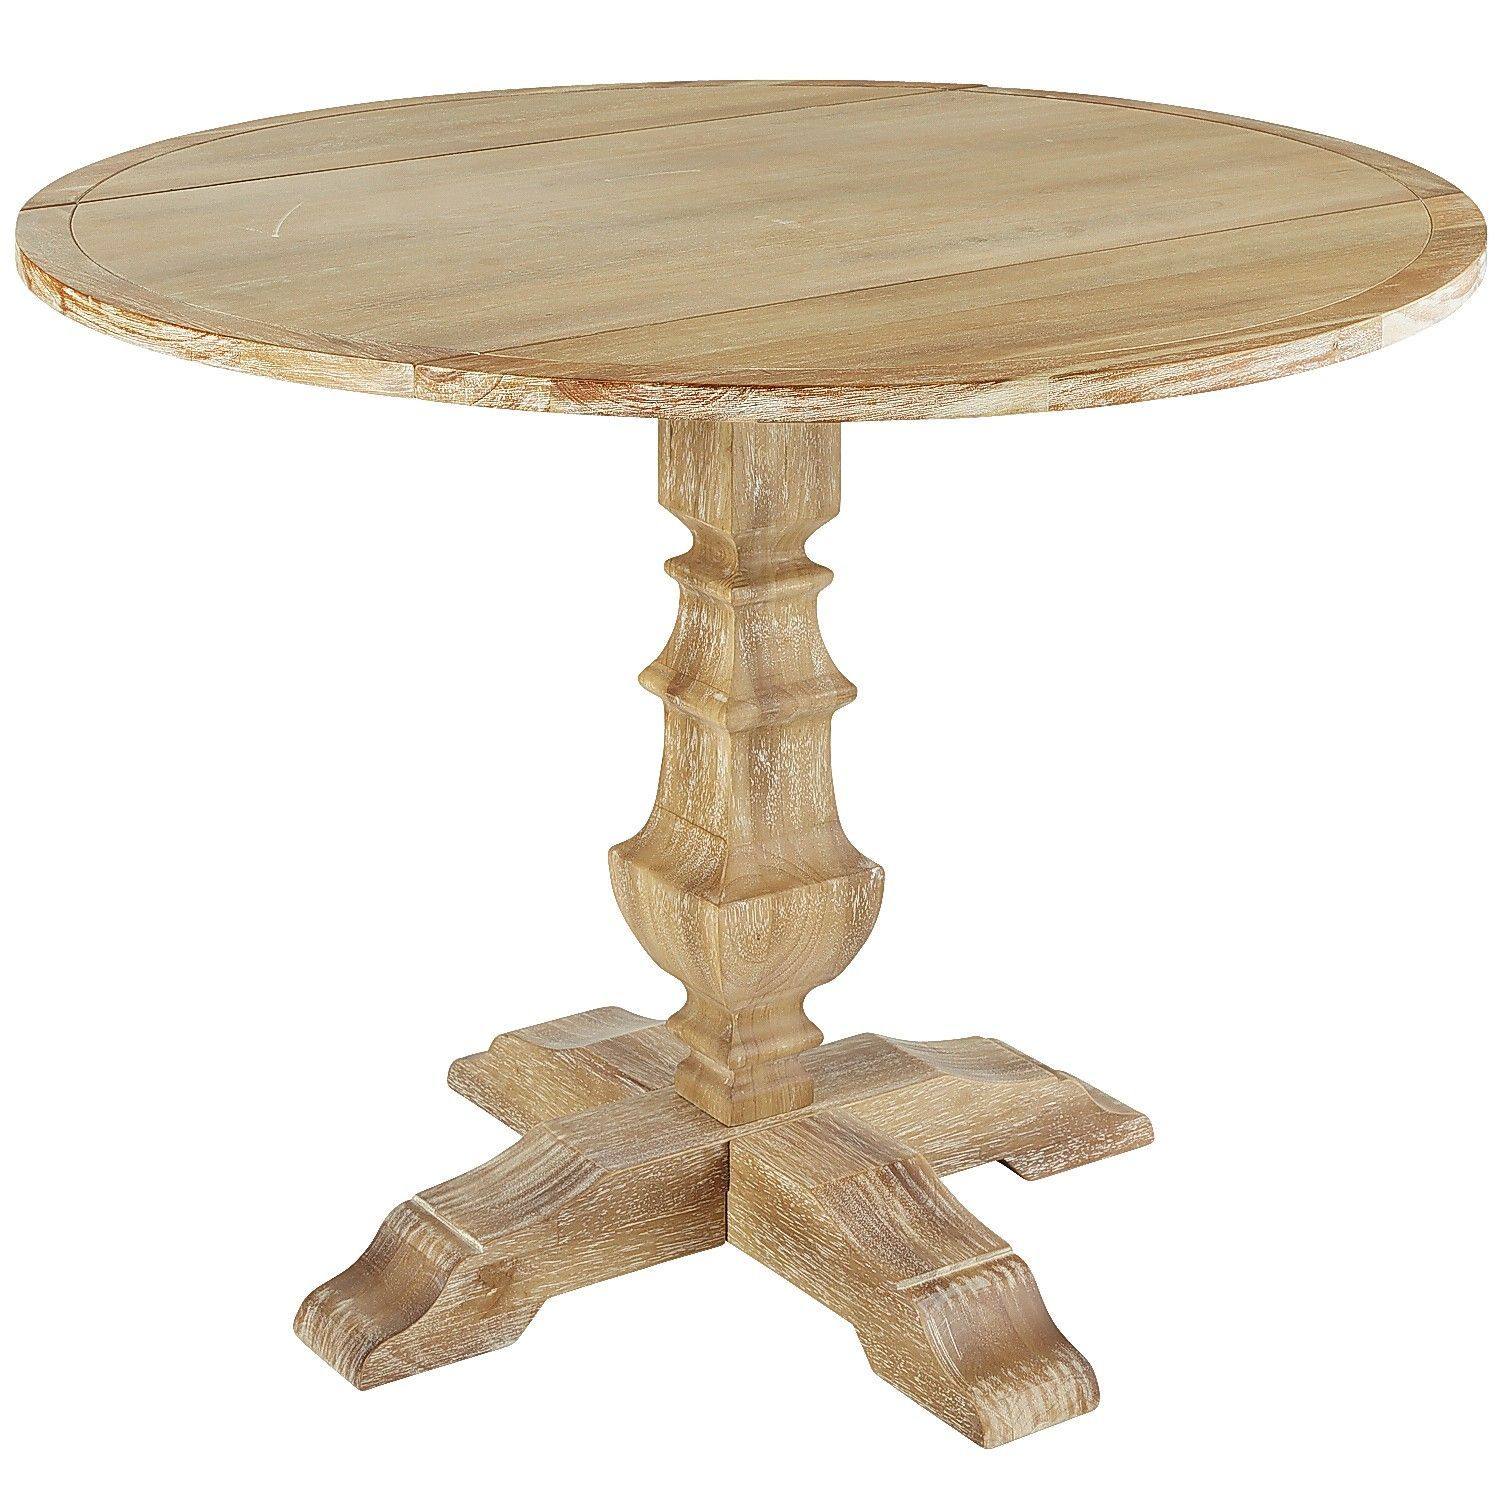 Natural Wood Dining Room Tables: Bradding Natural Stonewash Round Drop Leaf Dining Table